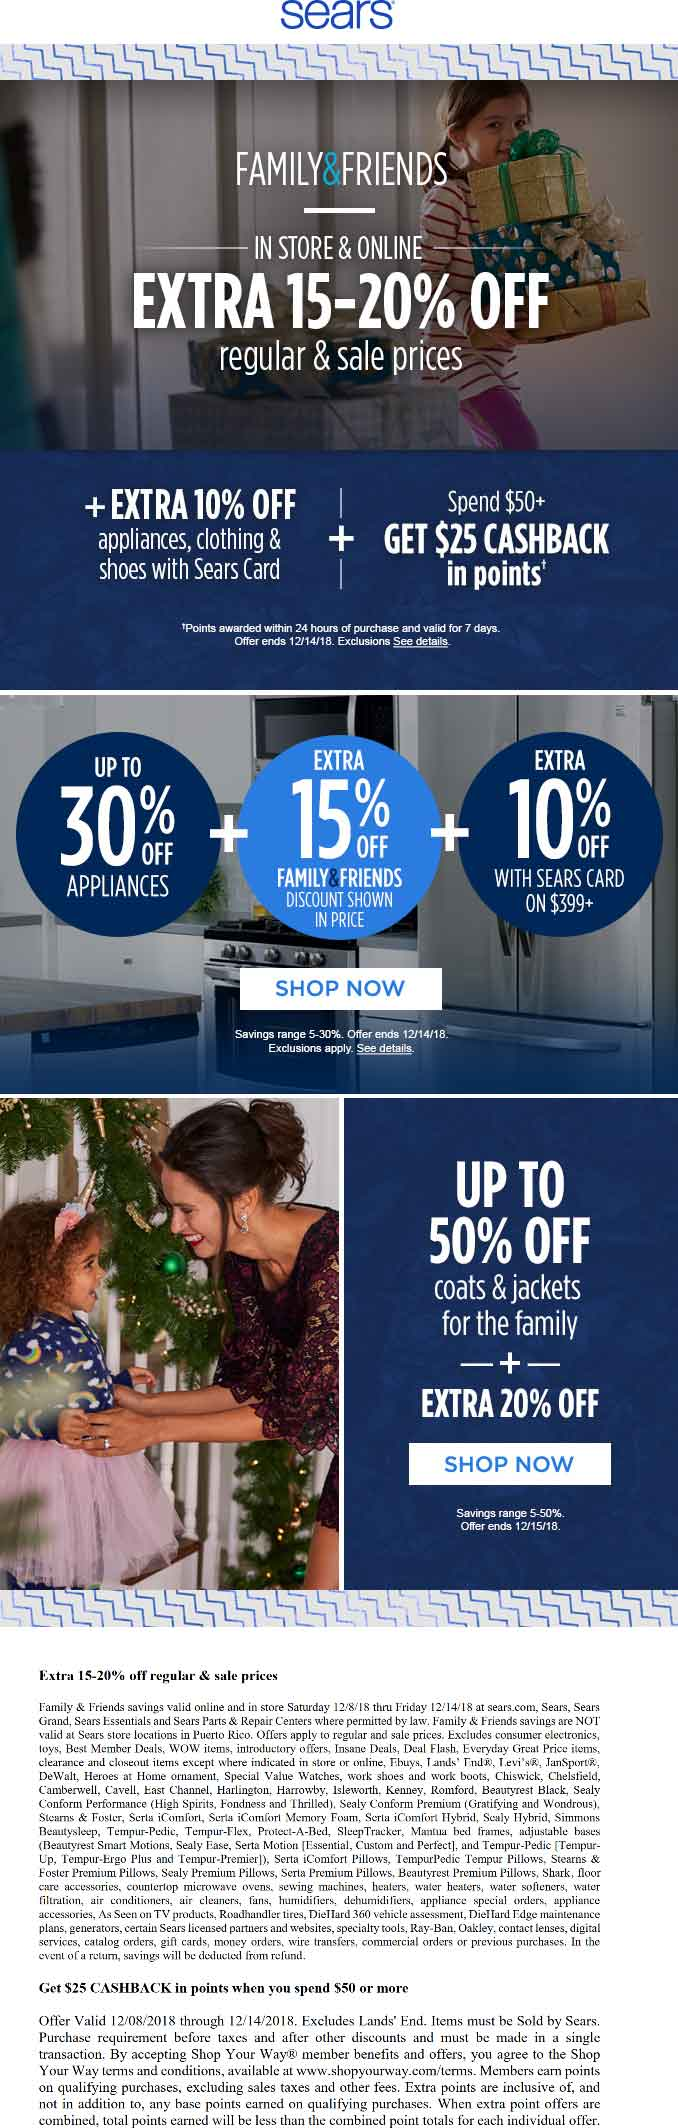 Sears.com Promo Coupon 15-20% off at Sears, ditto online